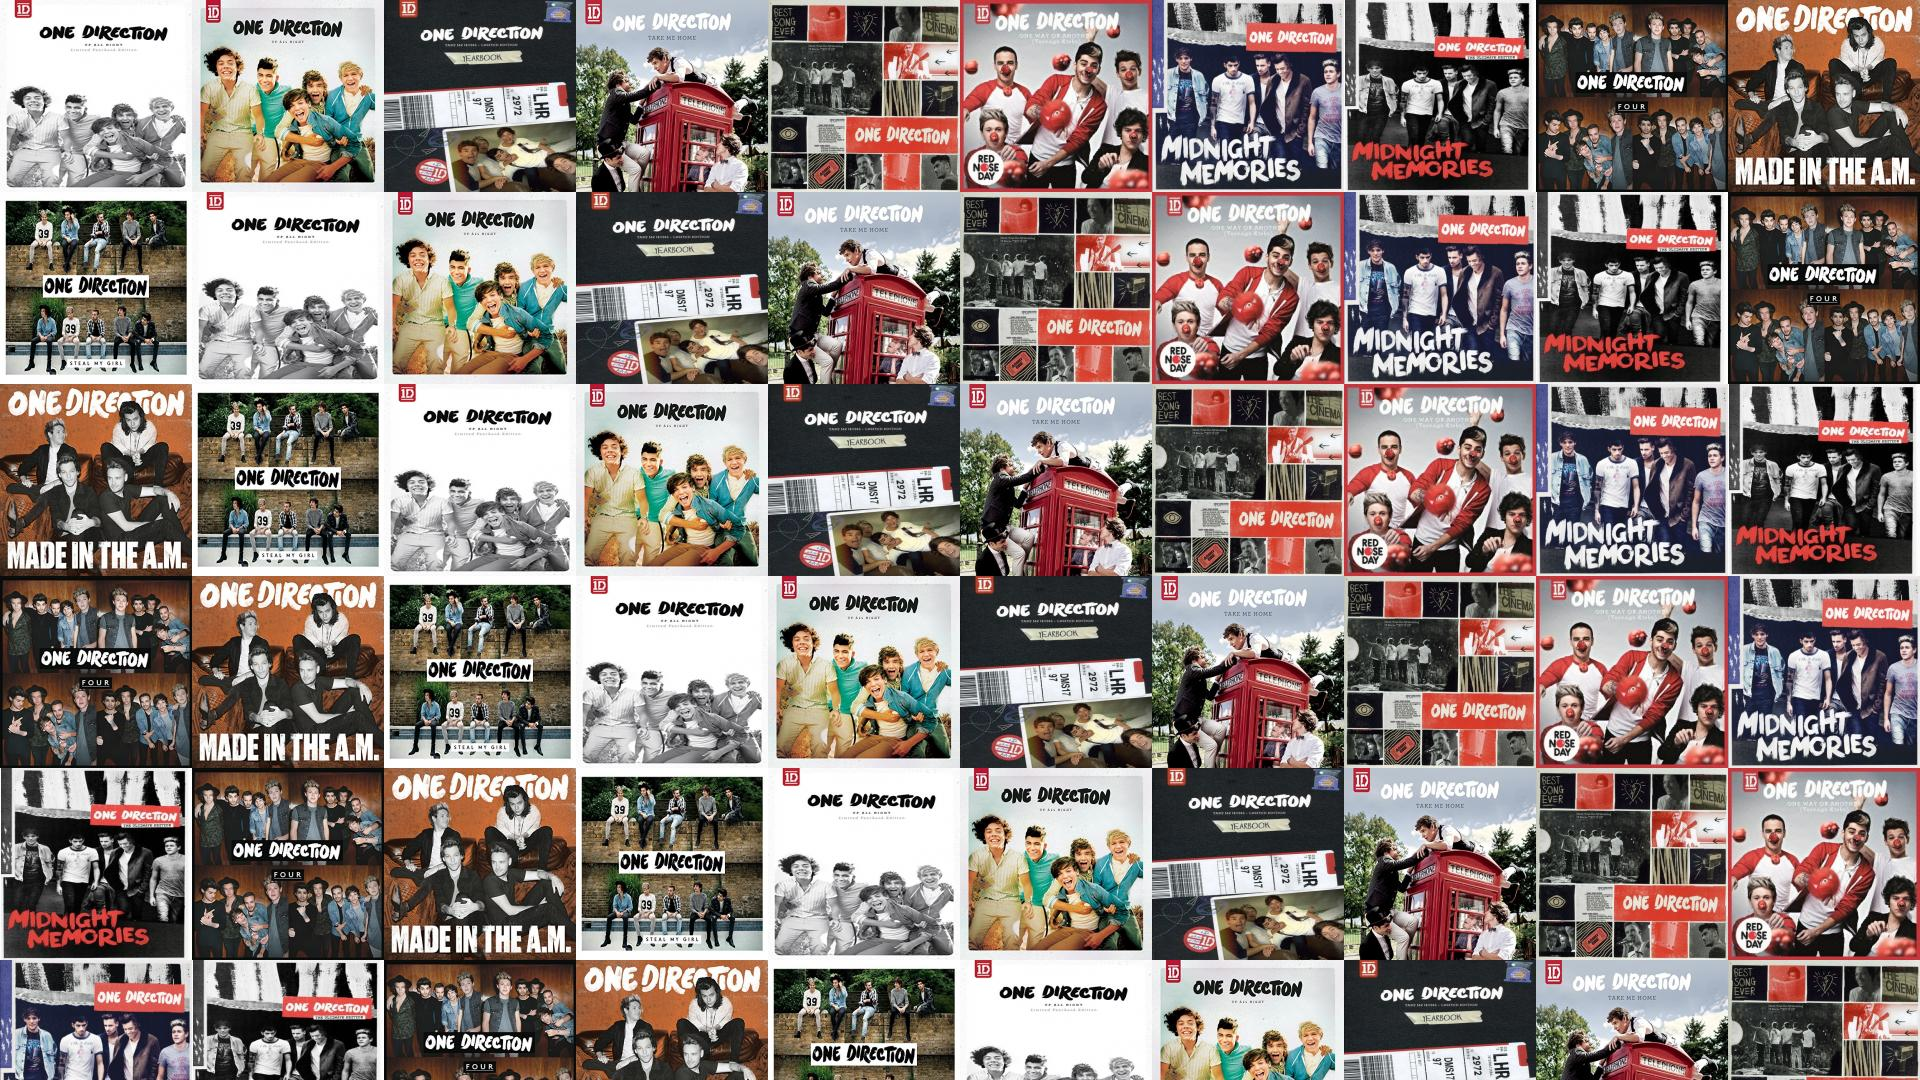 One Direction Up All Night Yearbook Up All Wallpaper « Tiled